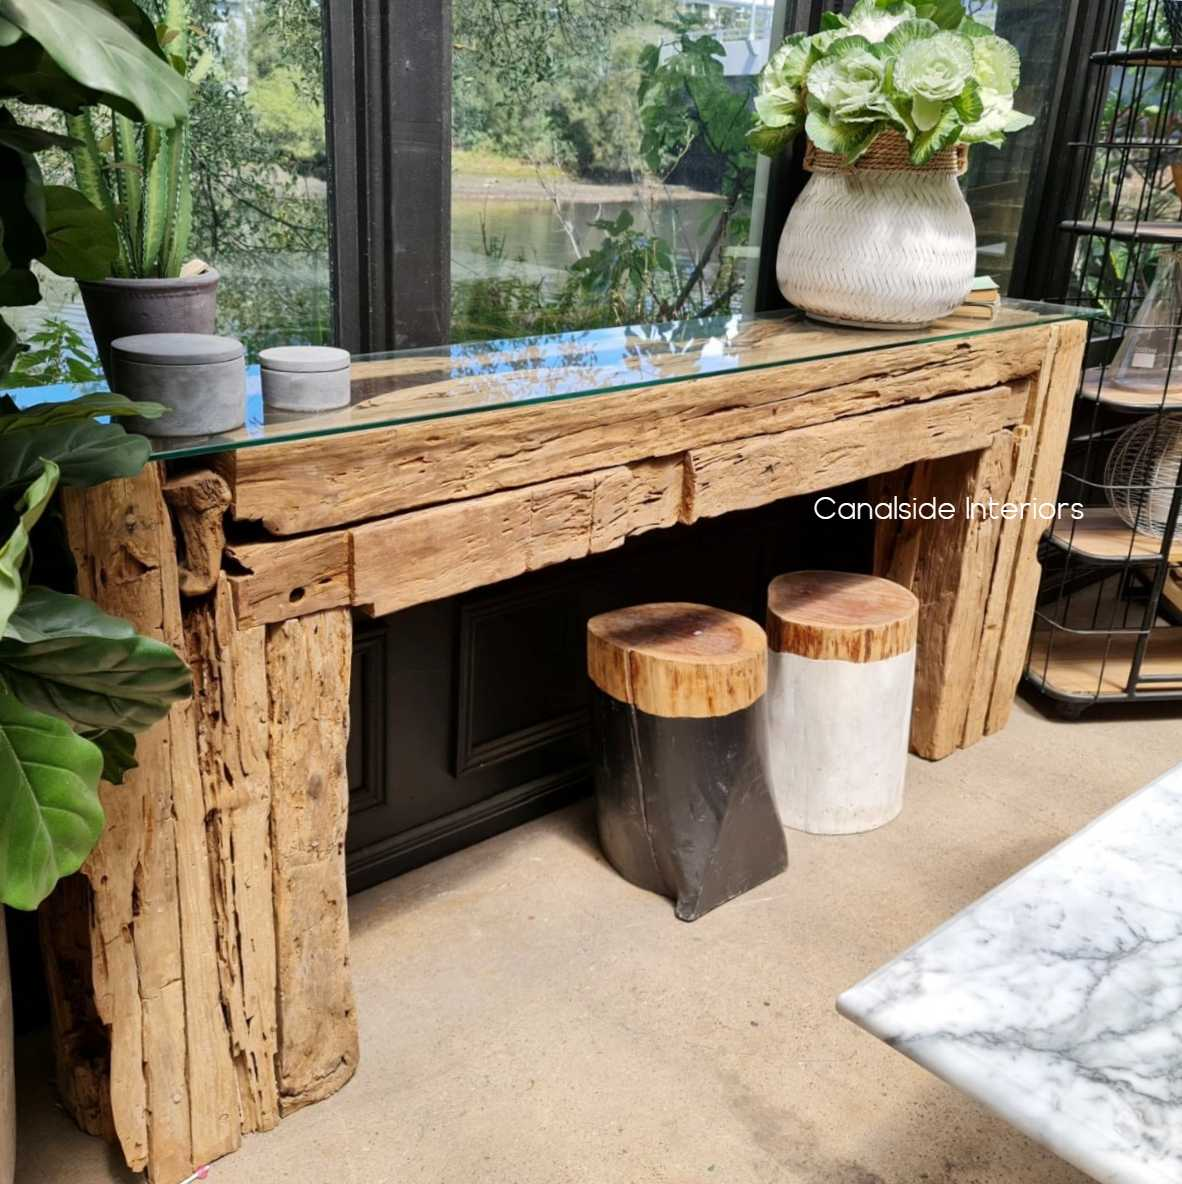 Console, Reclaimed Wood, Reclaimed Console, Recycled, Wood, timber, driftwood, console table, industrial, boho, rustic, slab, industrial